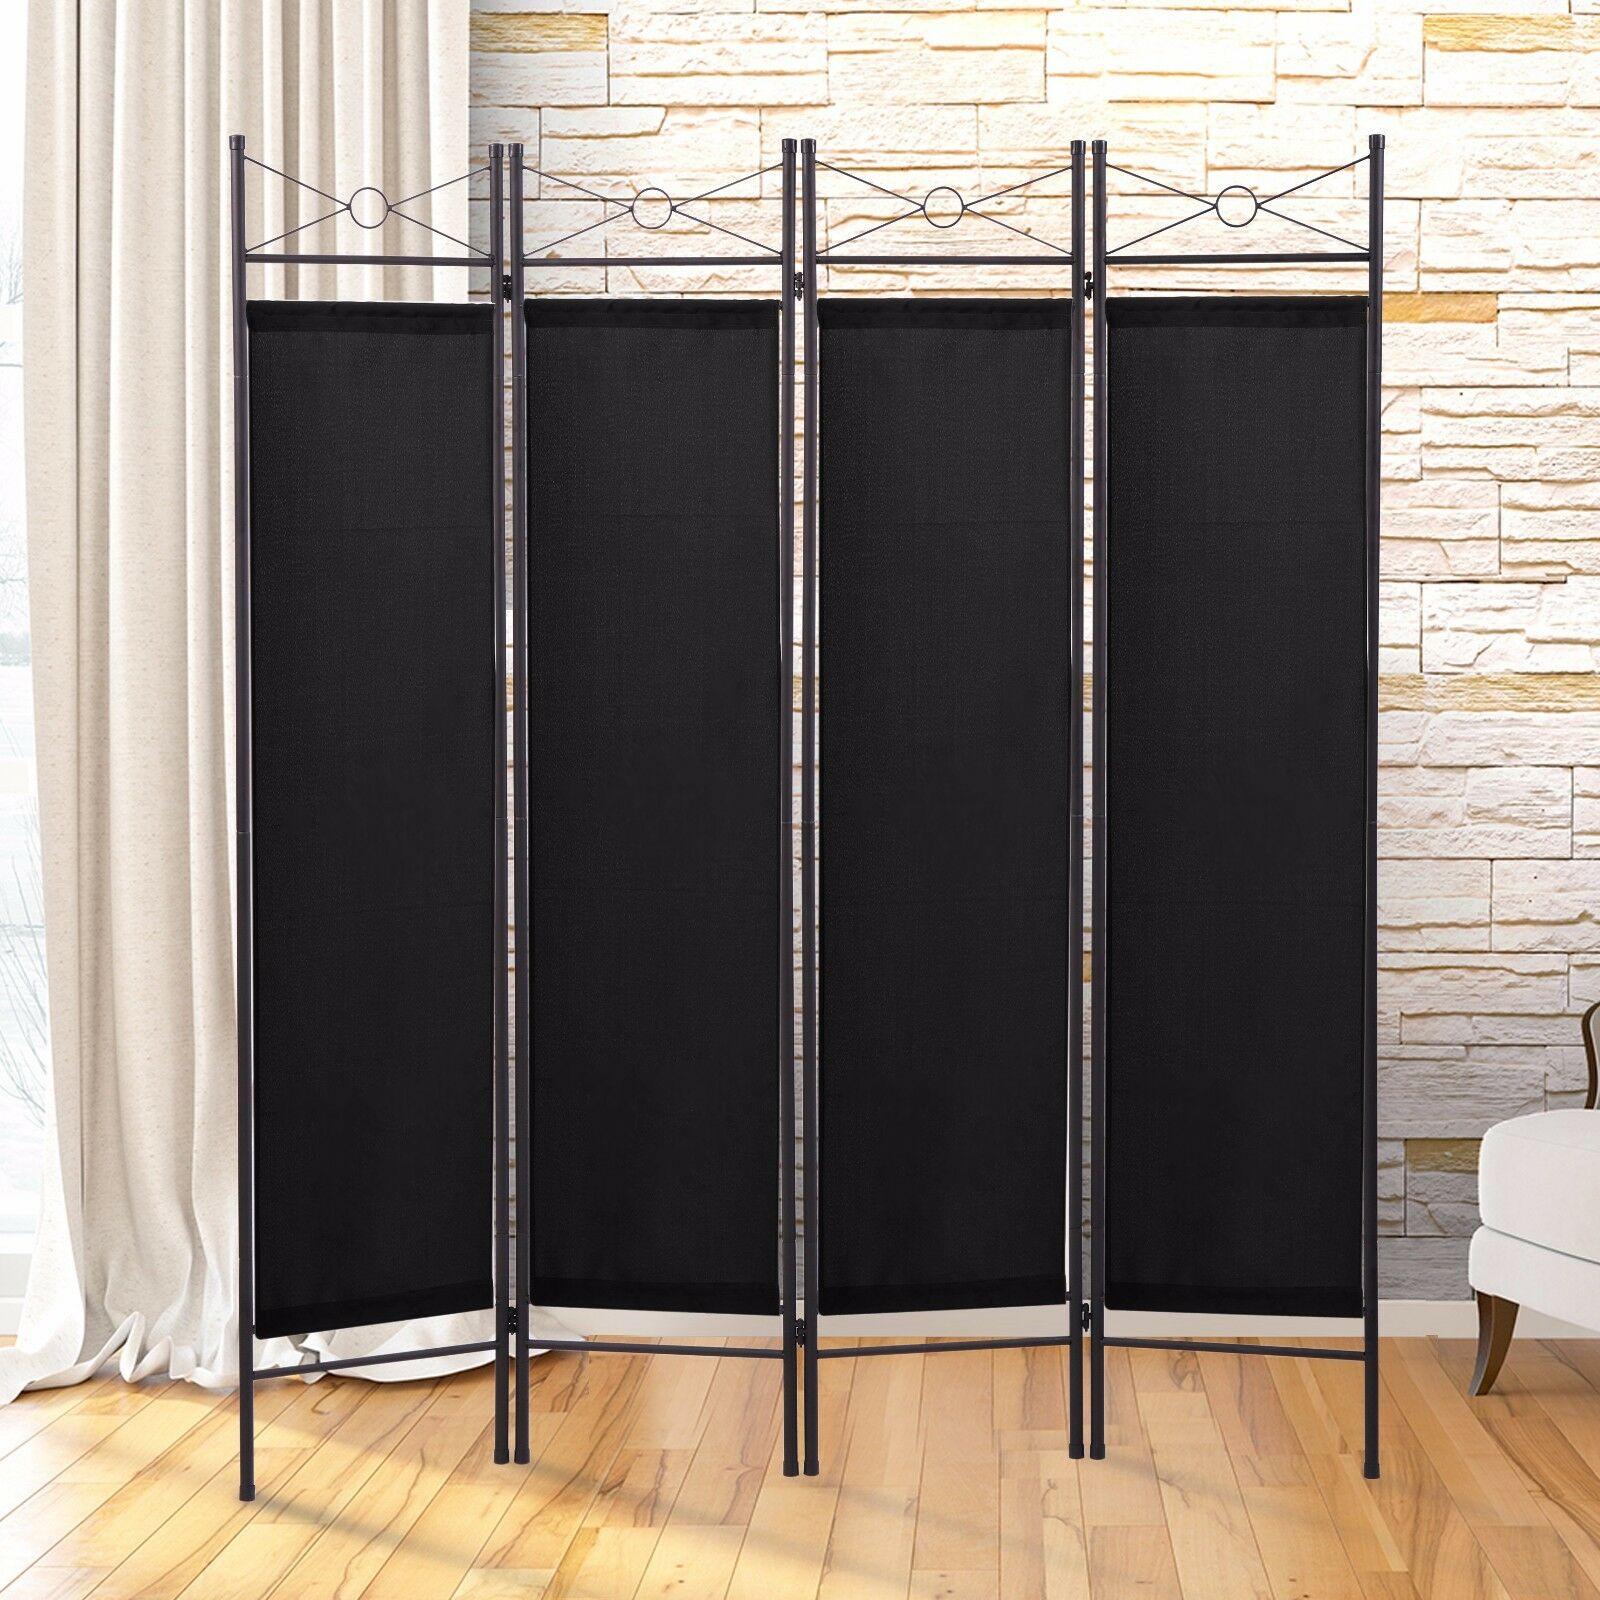 Black 4 Panel Room Divider Privacy Folding Screen Home Office Fabric ...